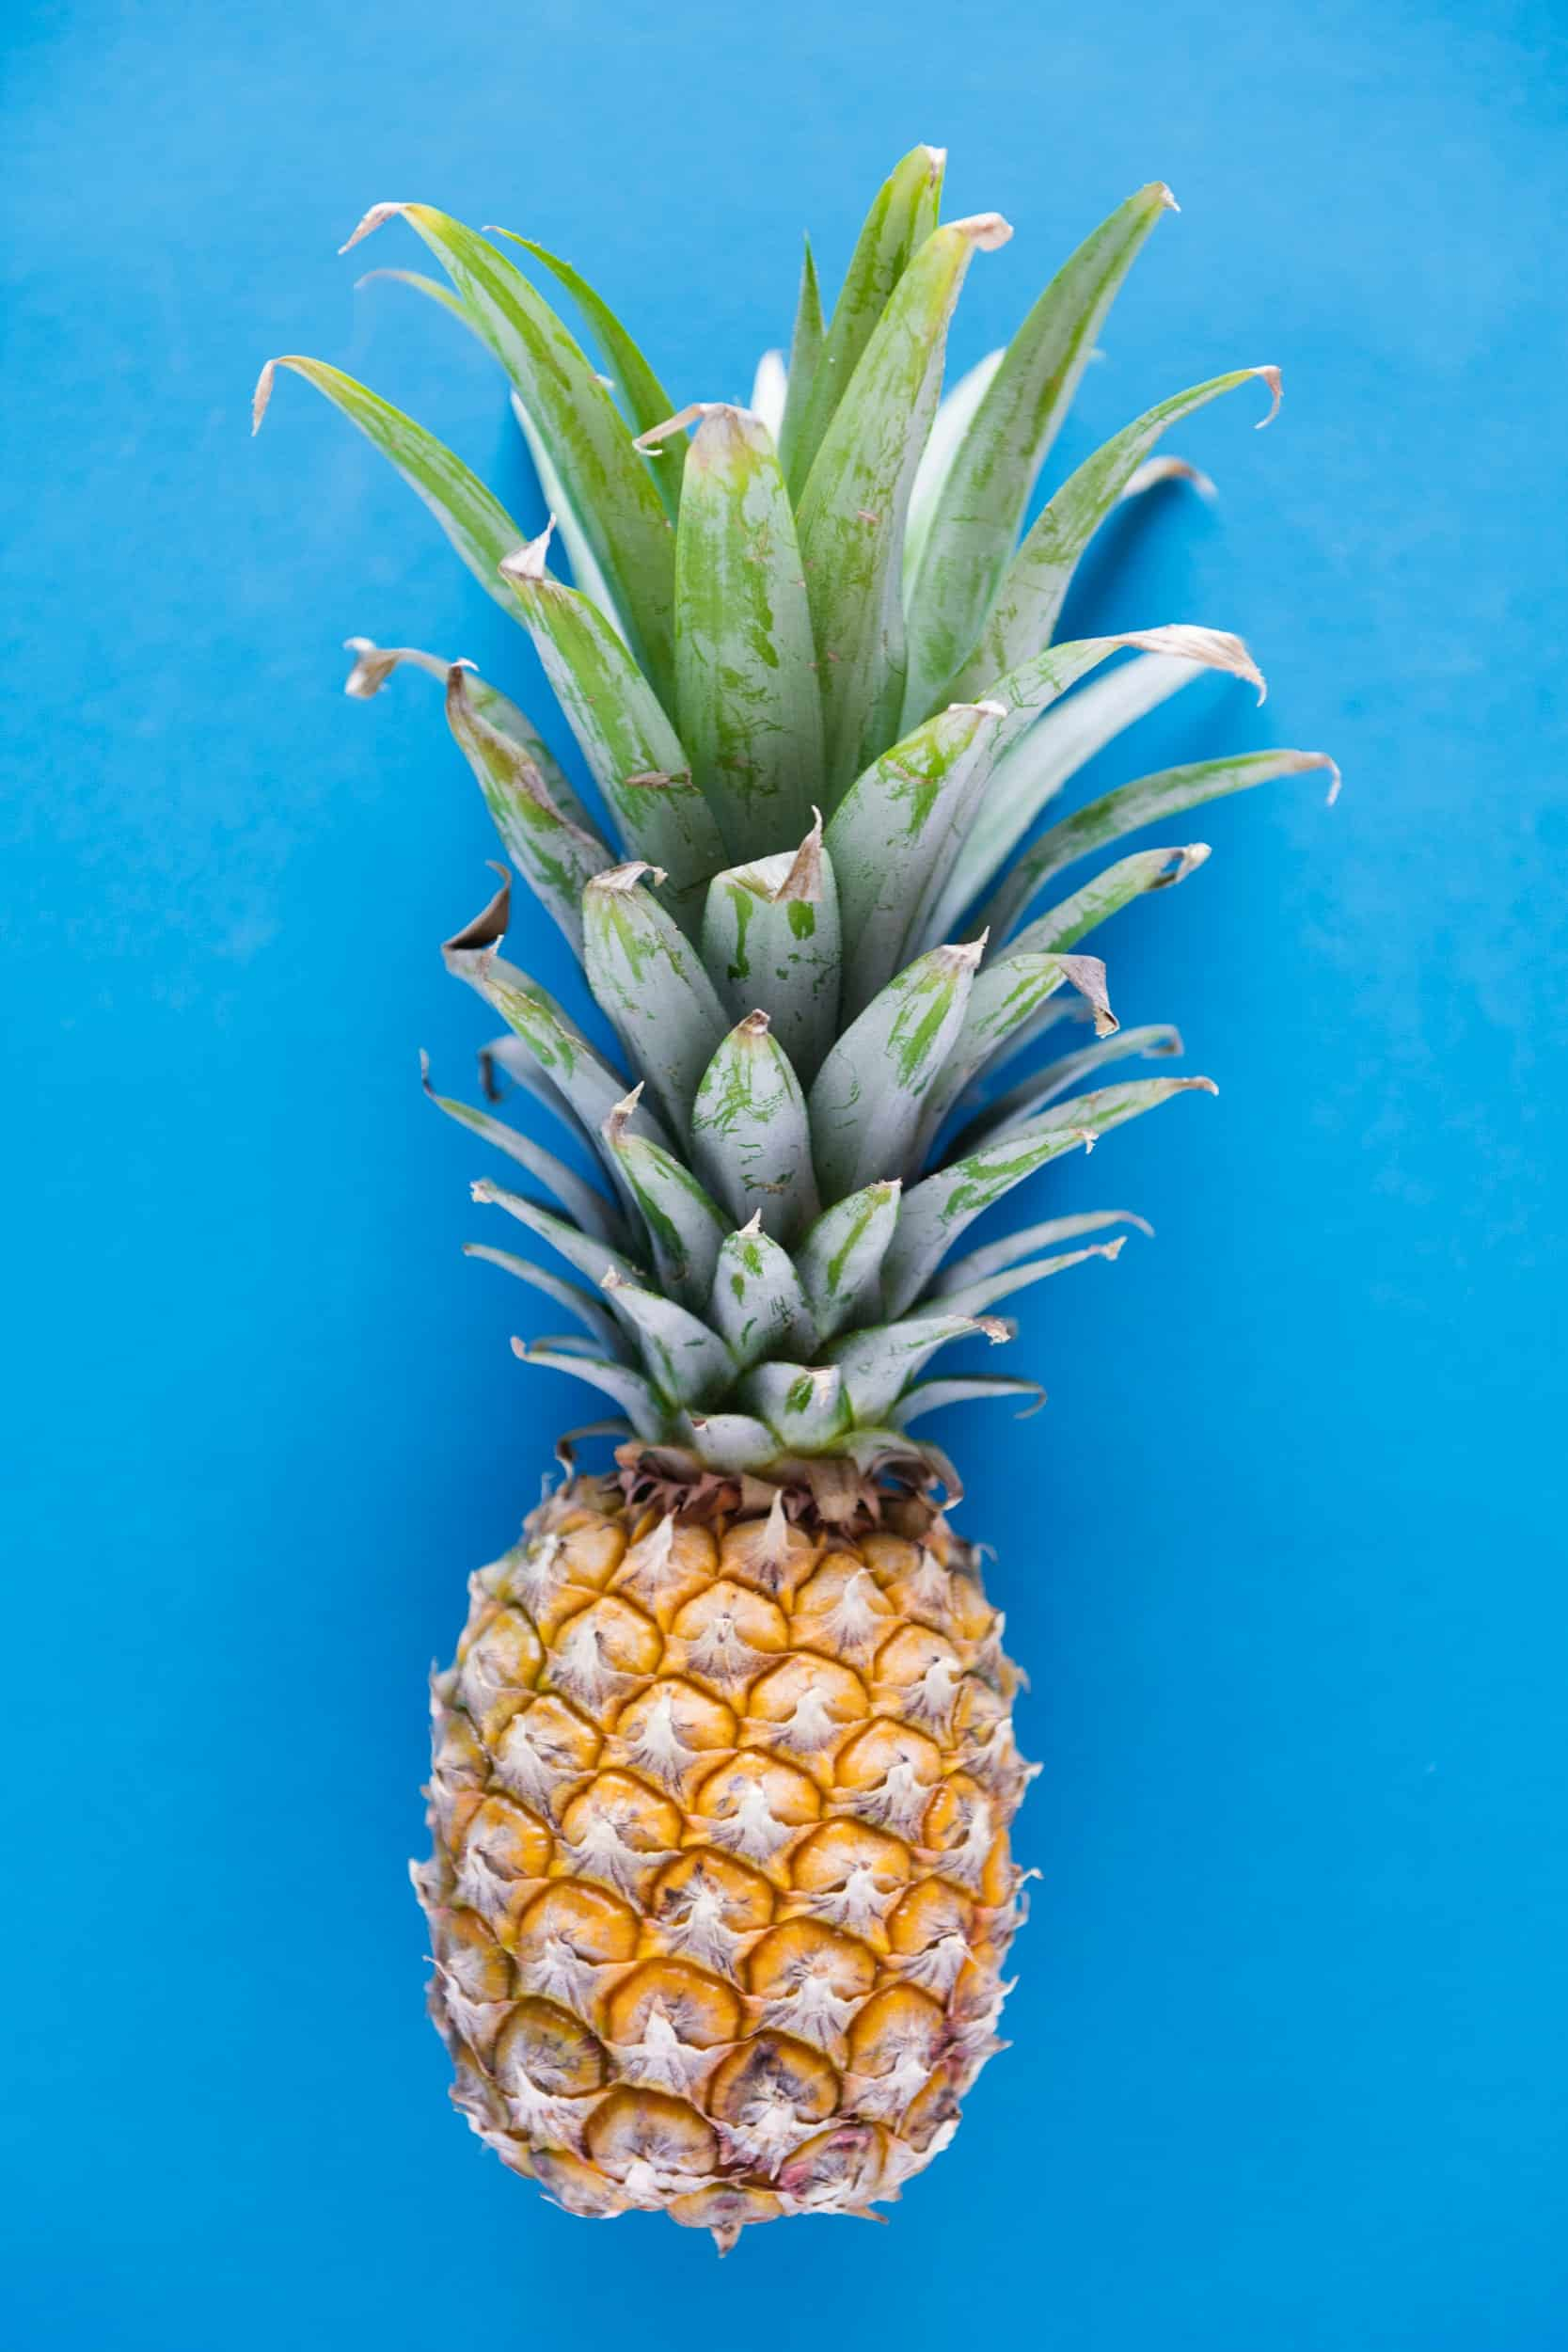 blue-background-delicious-flatlay-953217